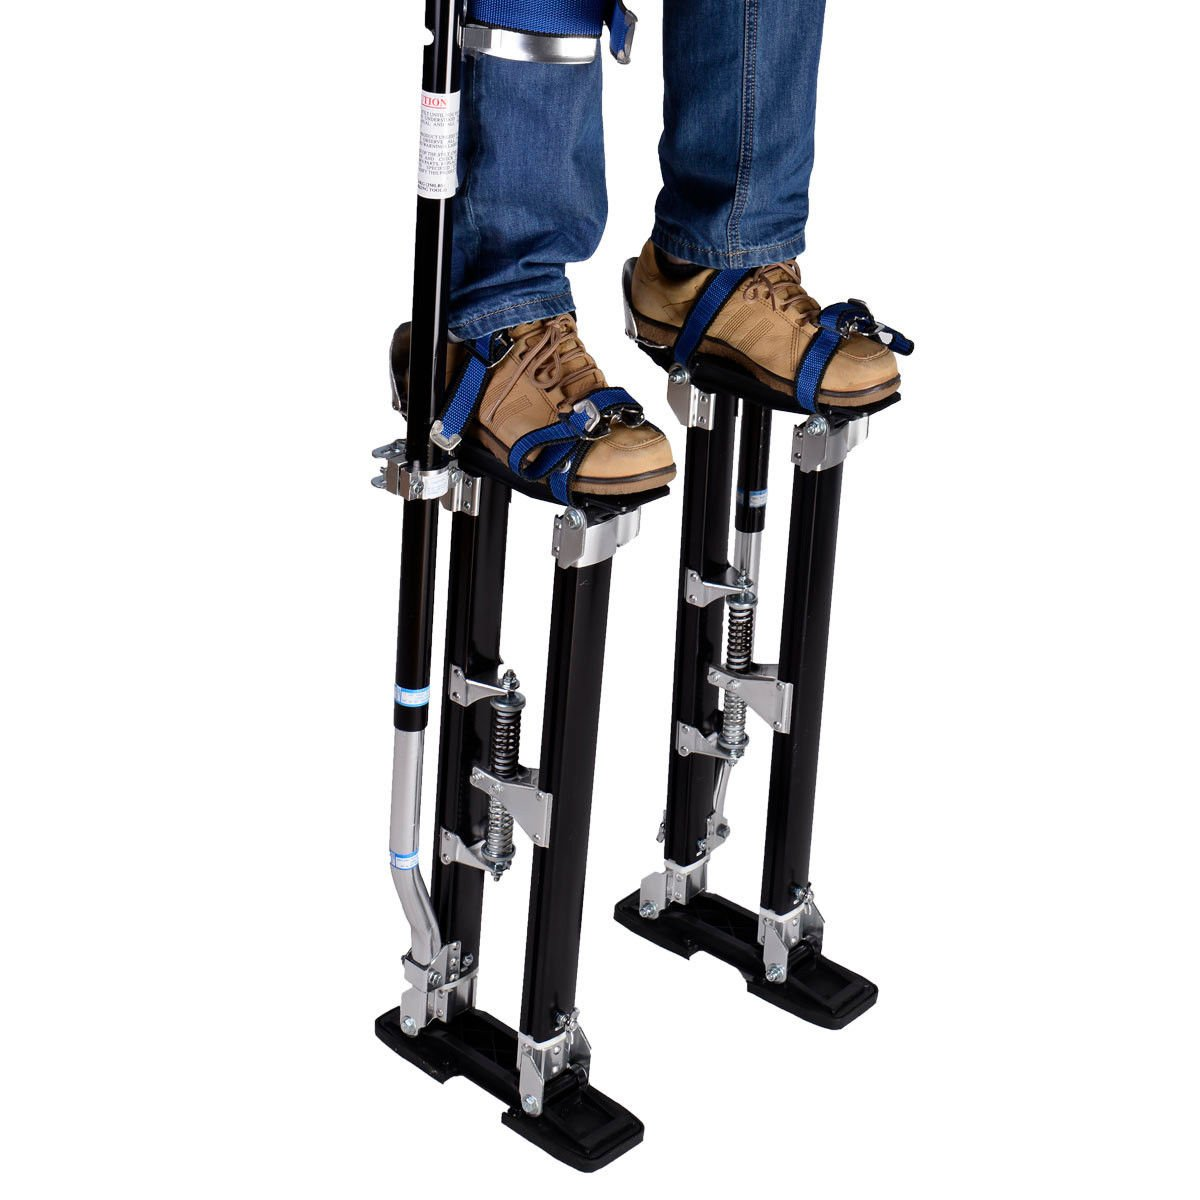 24-40 Inch Drywall Stilts Adjustable Aluminum Stilt Walking Painting Dura Taping Painter Tools by FrankMind (Image #2)